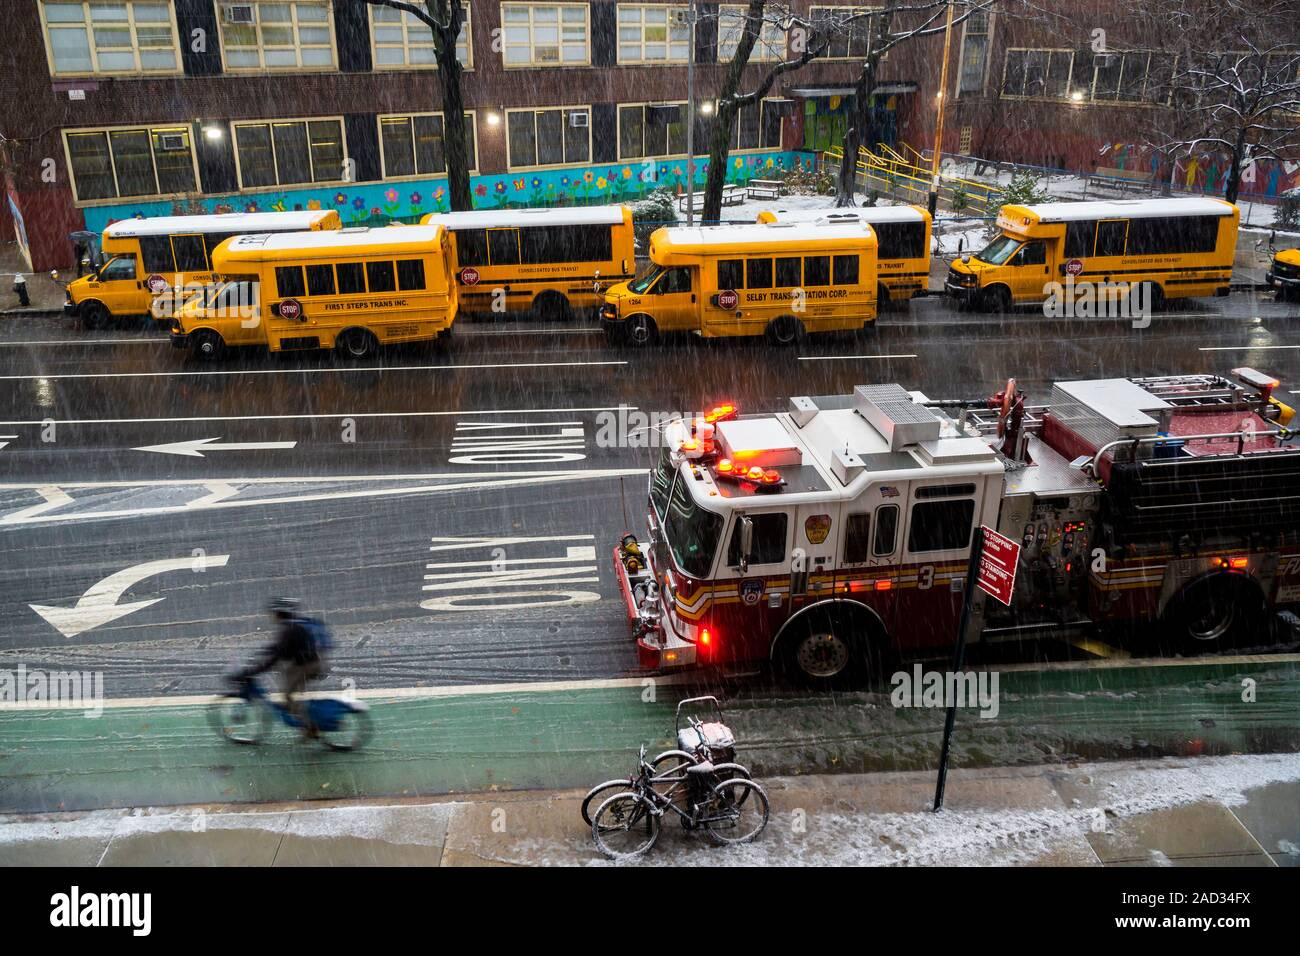 School buses line up in front of PS 33 in Chelsea in New York in anticipation of dismissal on Monday, December 2, 2019. New York is expected to receive between 1 and 3 inches of snow during this first storm of the season. (© Richard B. Levine) Stock Photo